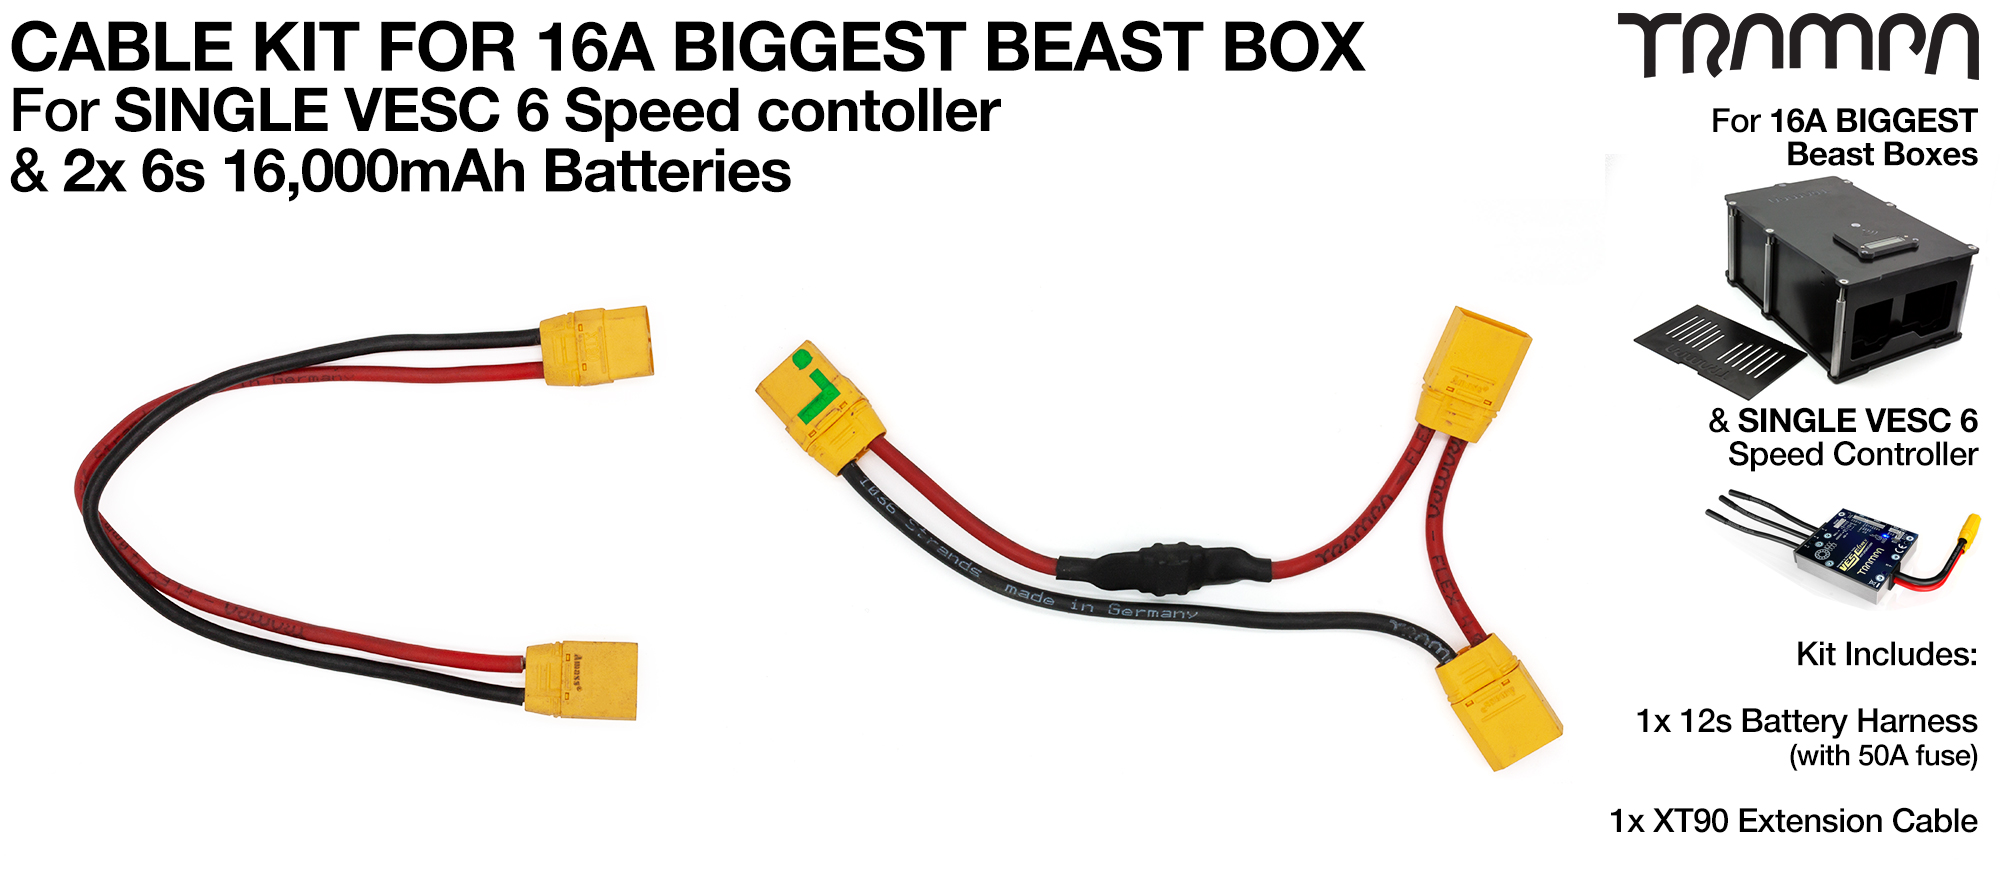 Complete Beast Box 12s1p Cable Kit with Key Wire, XT90 & XT90s Connectors, 50 Amp Fuse all soldered & heat sealed ready for plug & play use TRAMPA Stamped Silicone Cable!